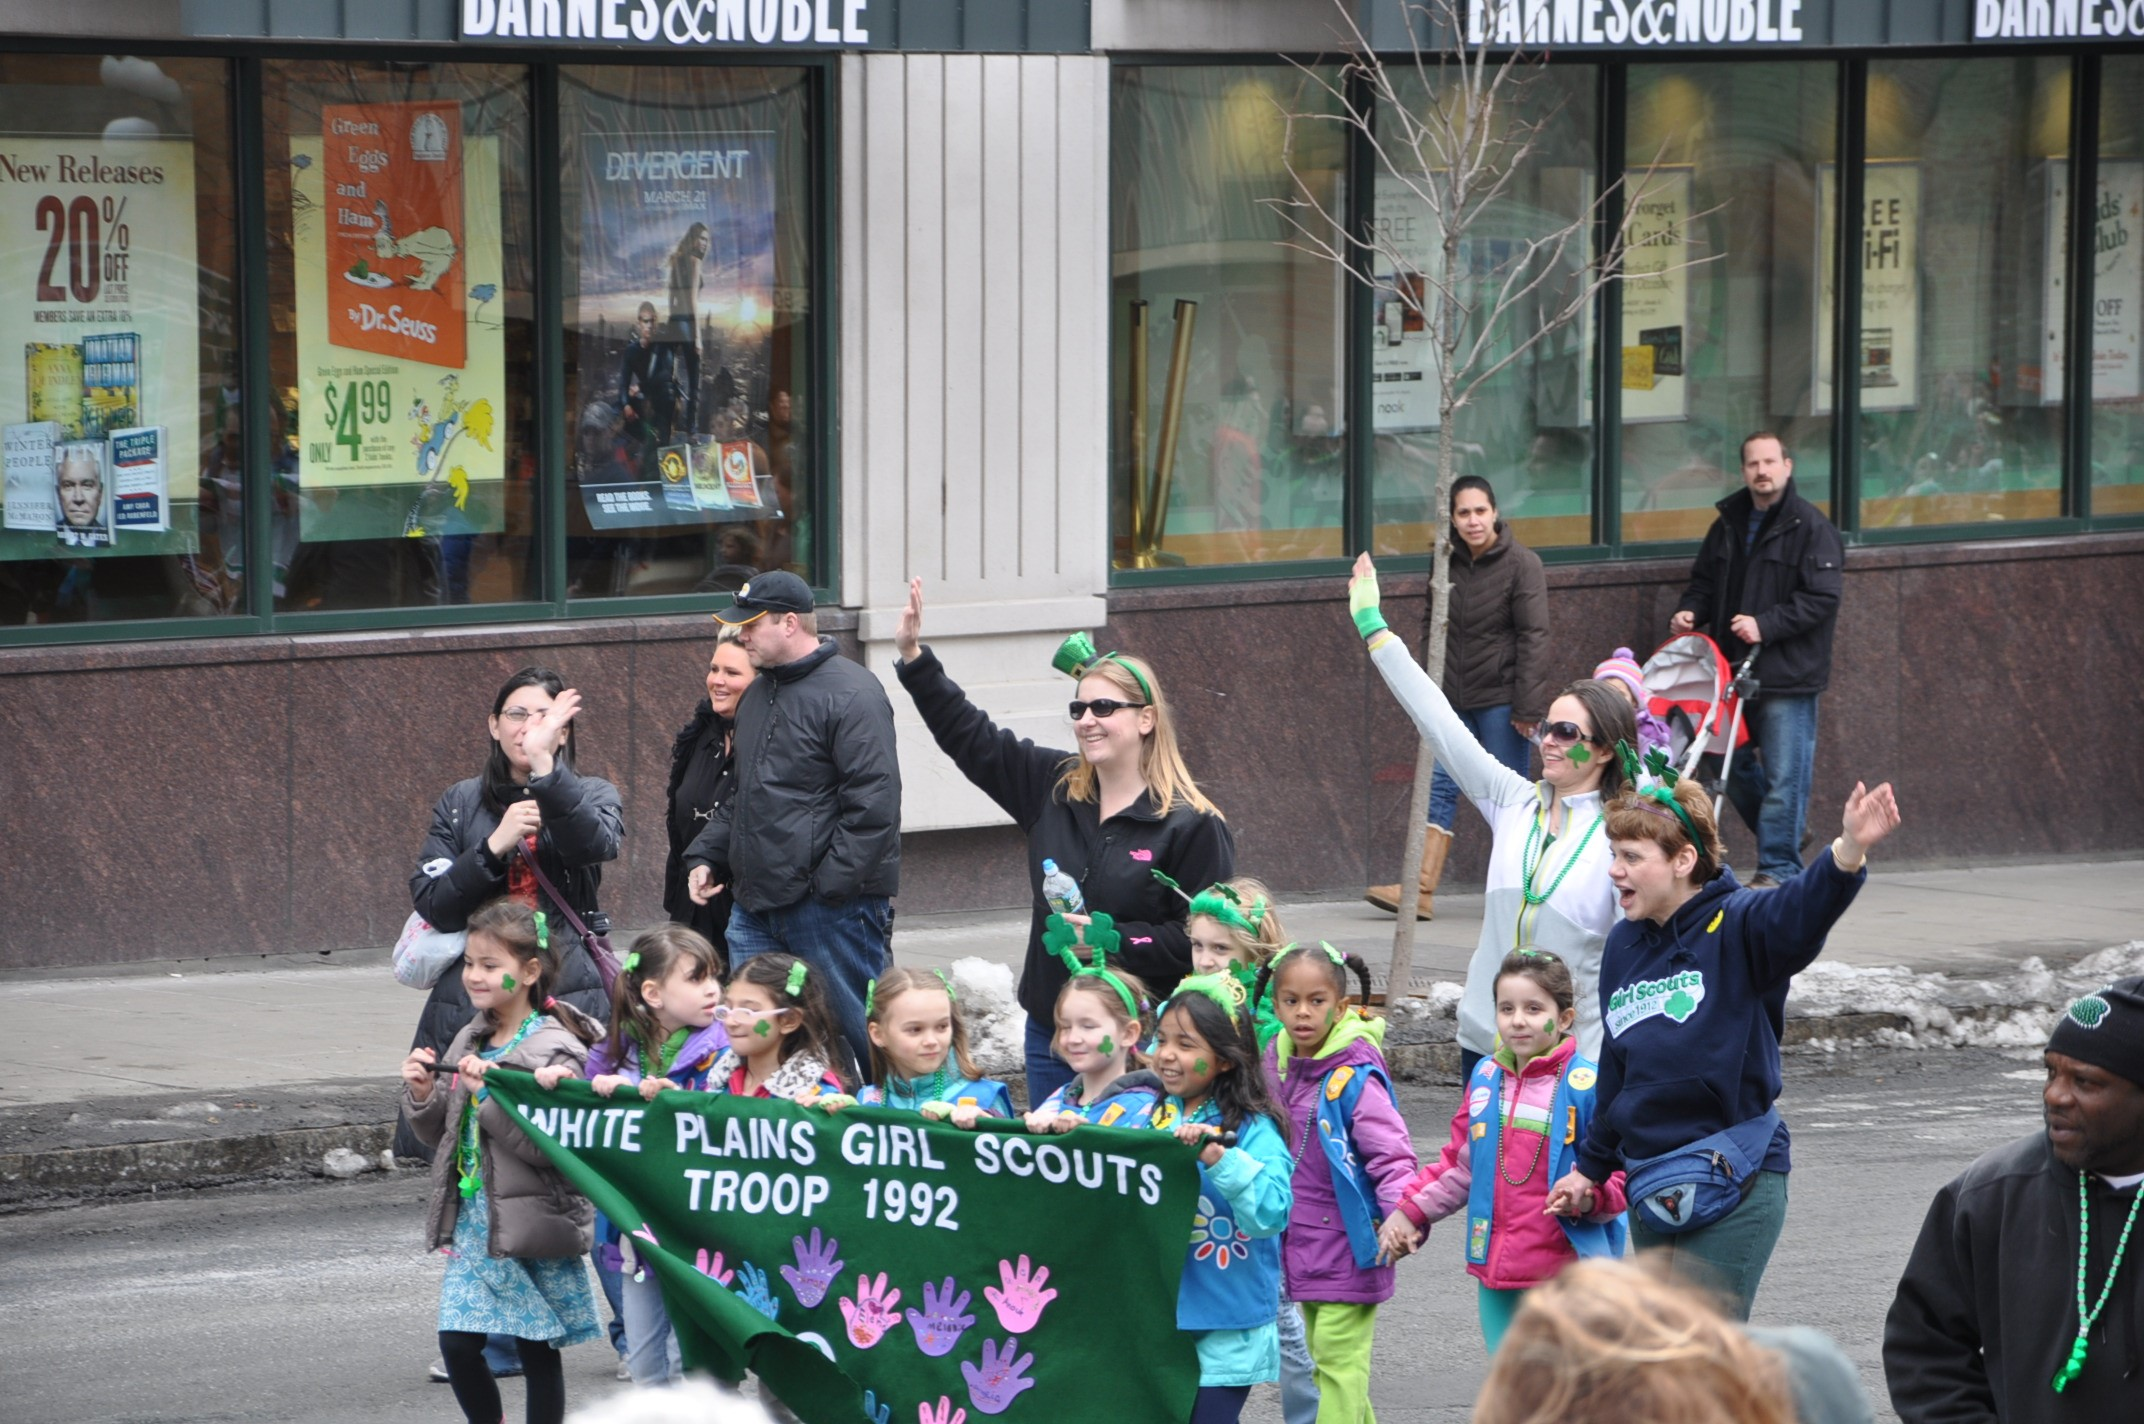 White Plains Girl Scouts